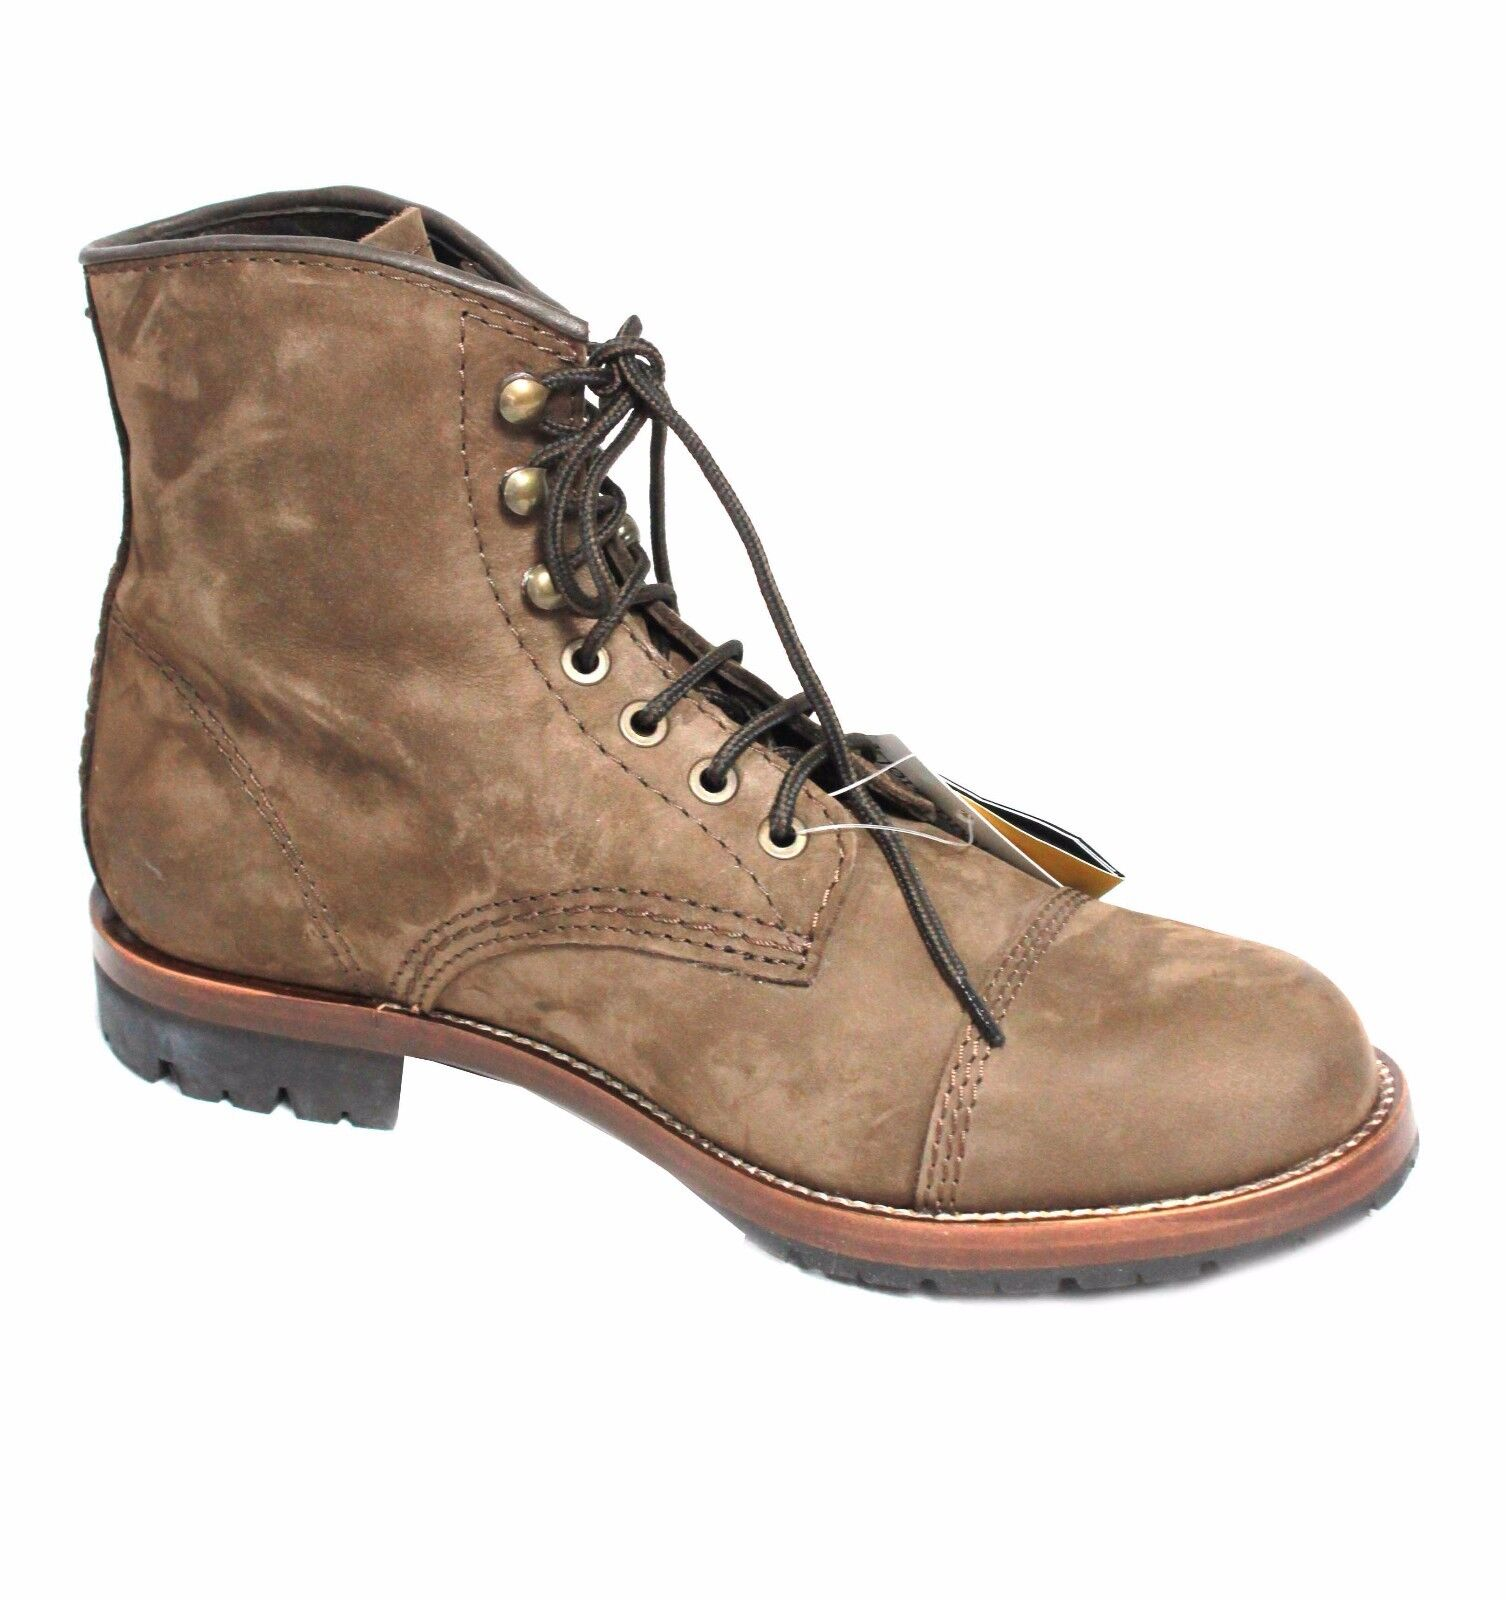 KJORE PROJECT stivaletto uomo  nabuk 100% MORO mod BROWN BOOT 100% nabuk pelle MADE IN ITA 6ef46d